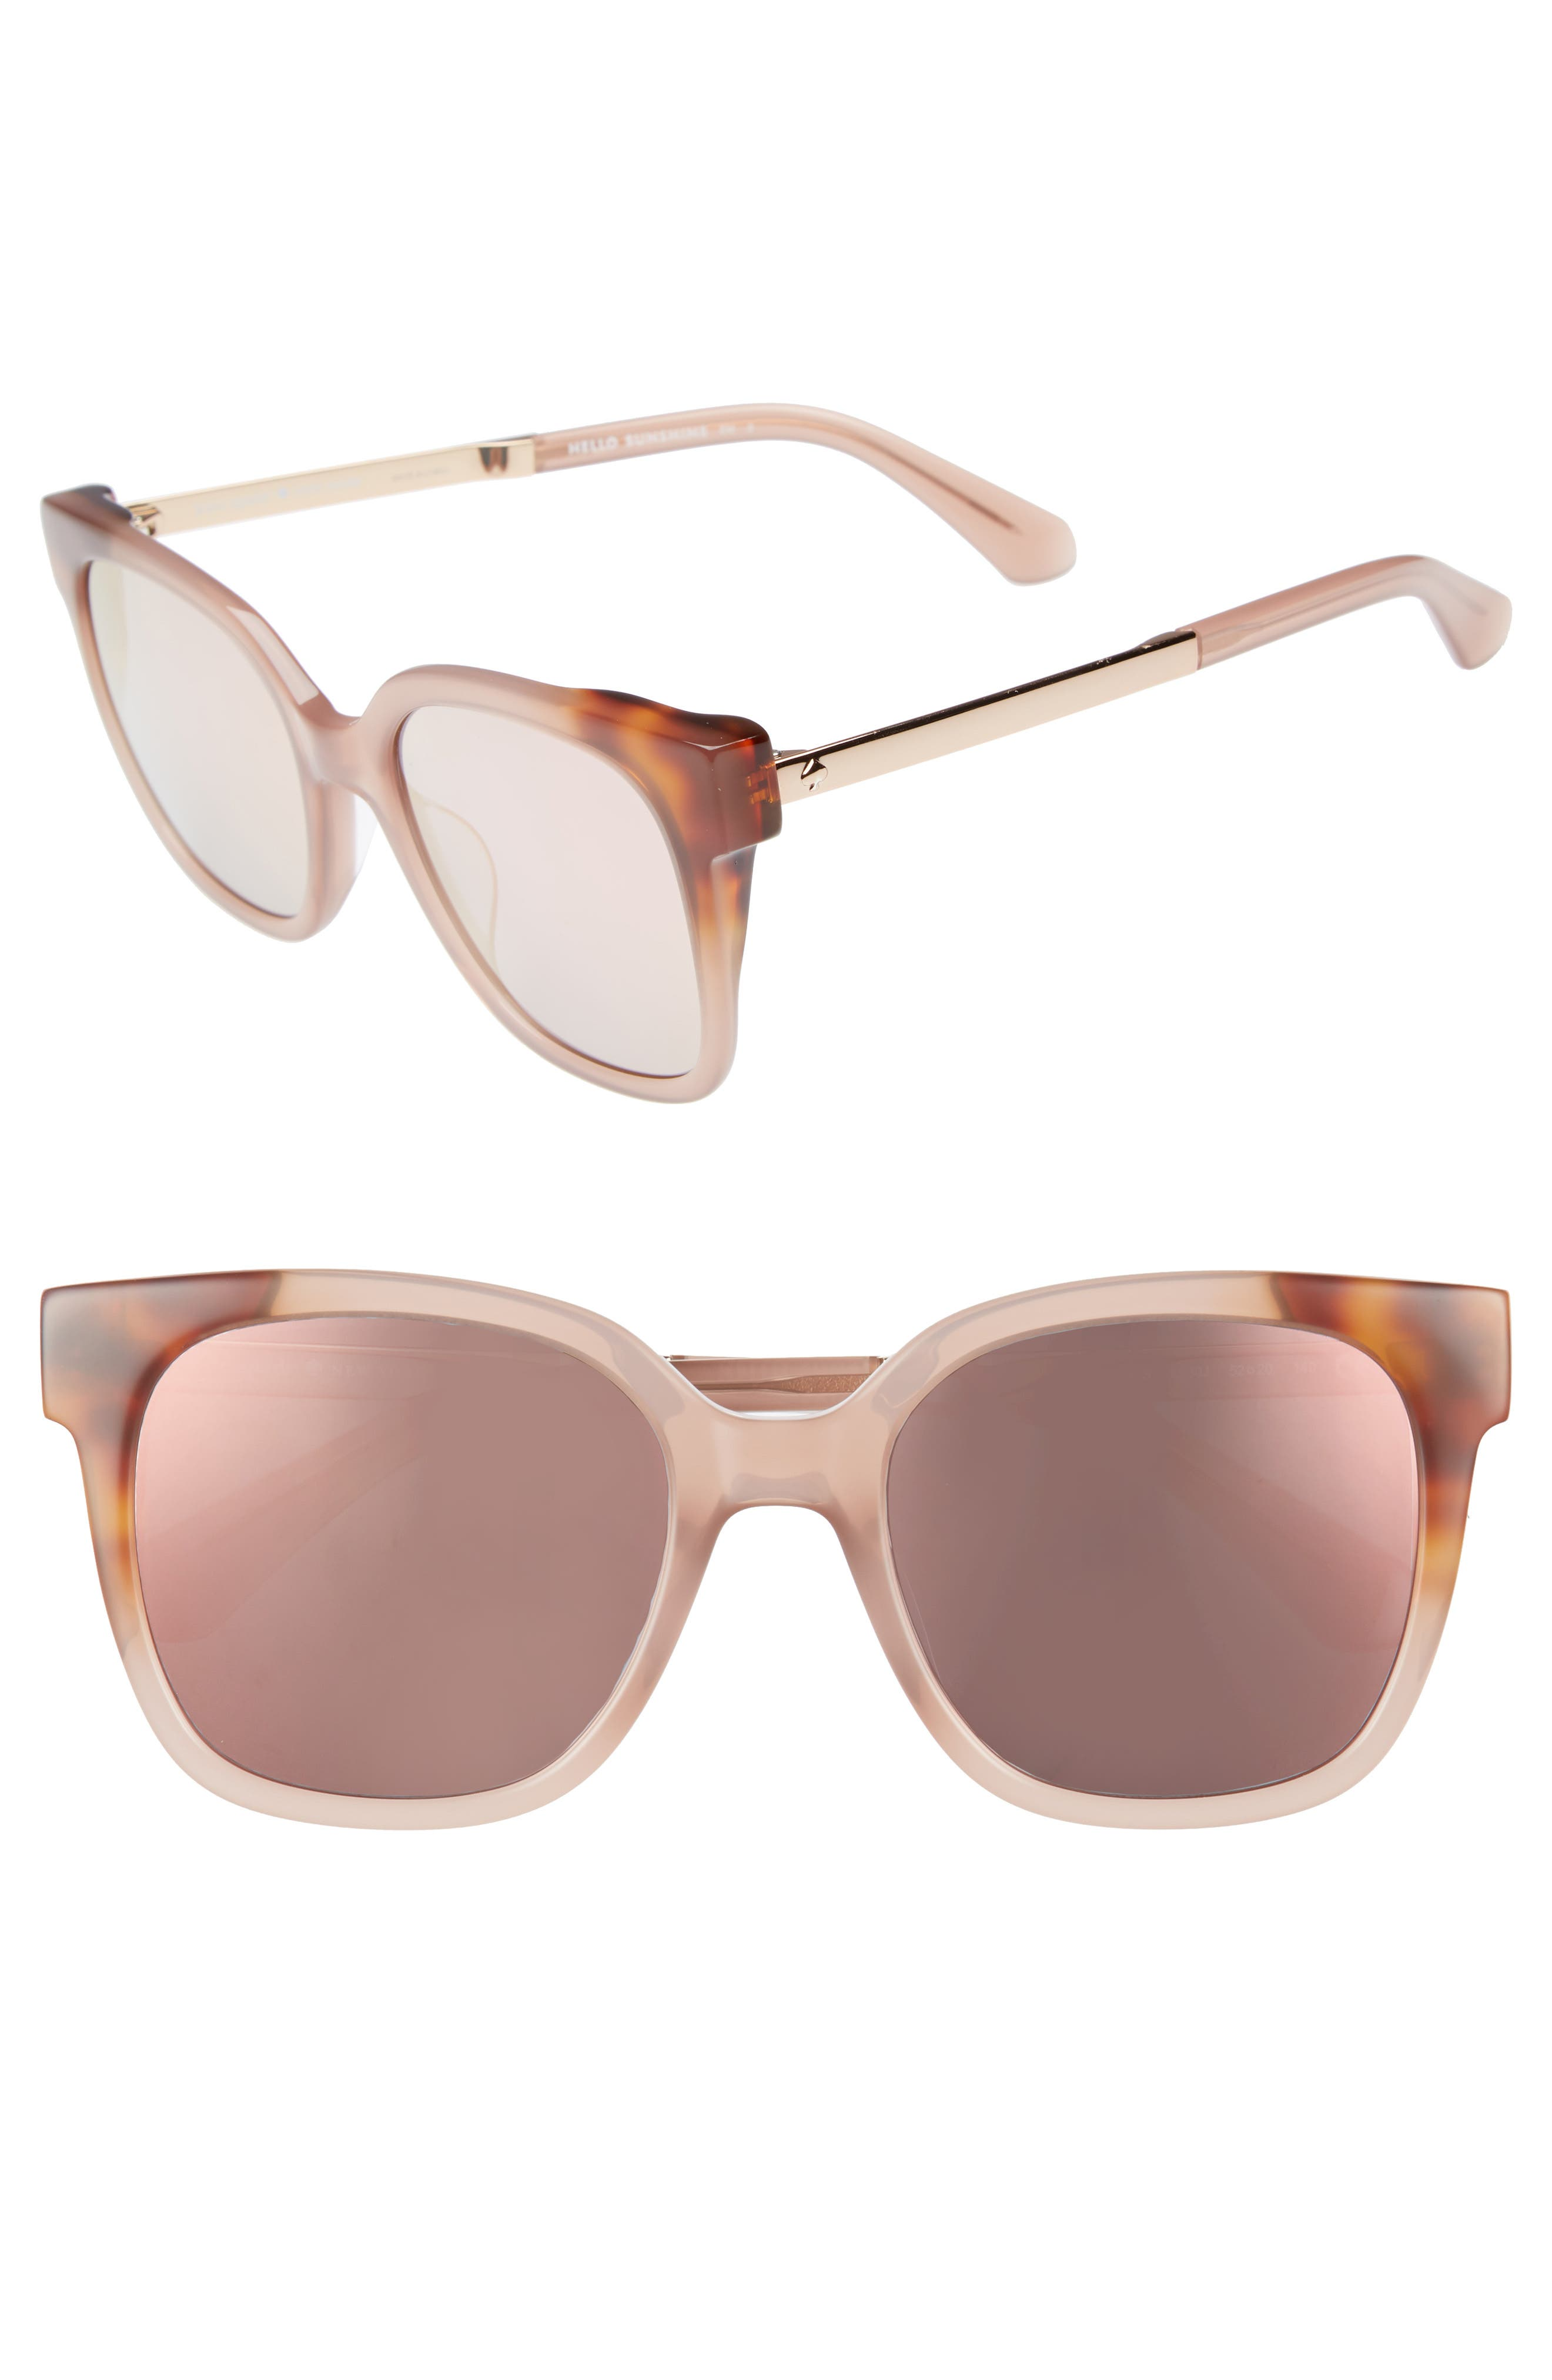 caelyns basic 52mm sunglasses,                         Main,                         color, Nude/ Havana/ Honey